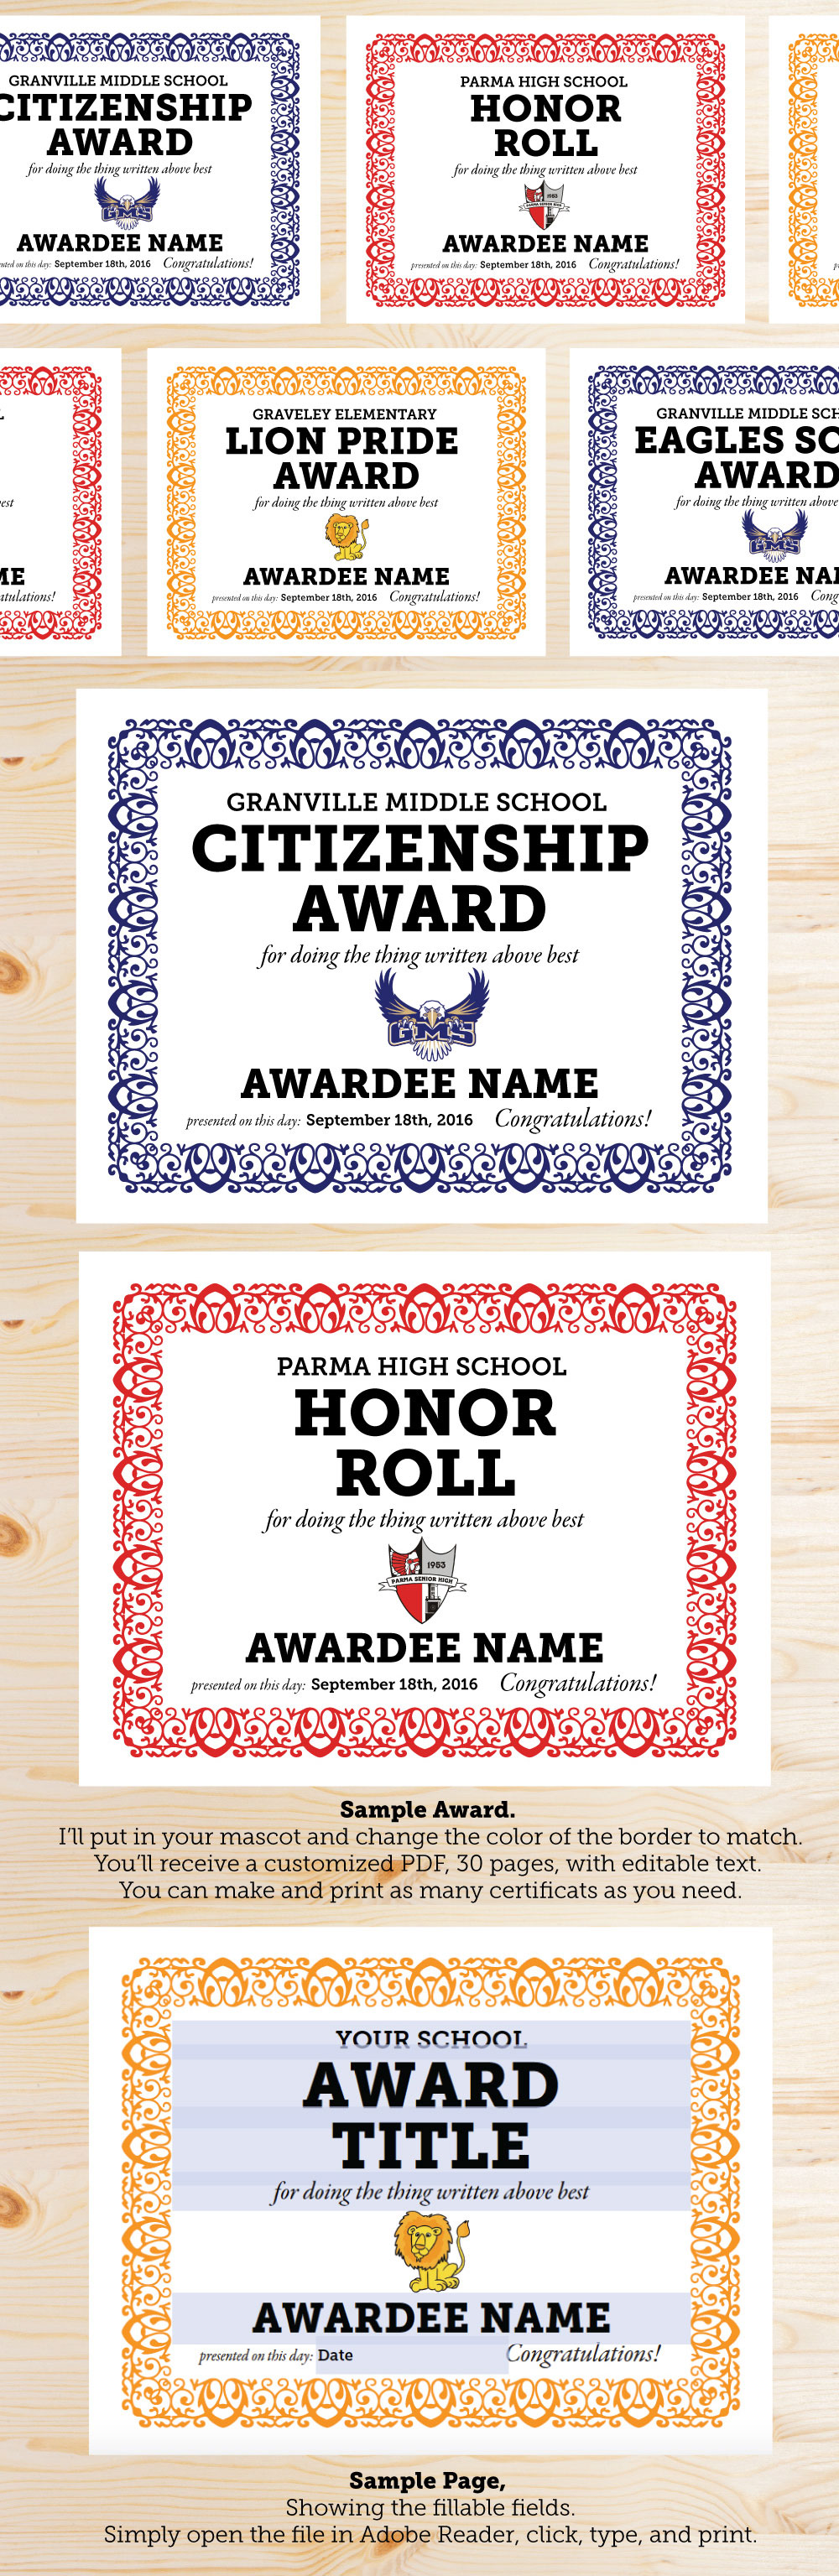 New Custom Editable School Award Certificates Judy Havrilla